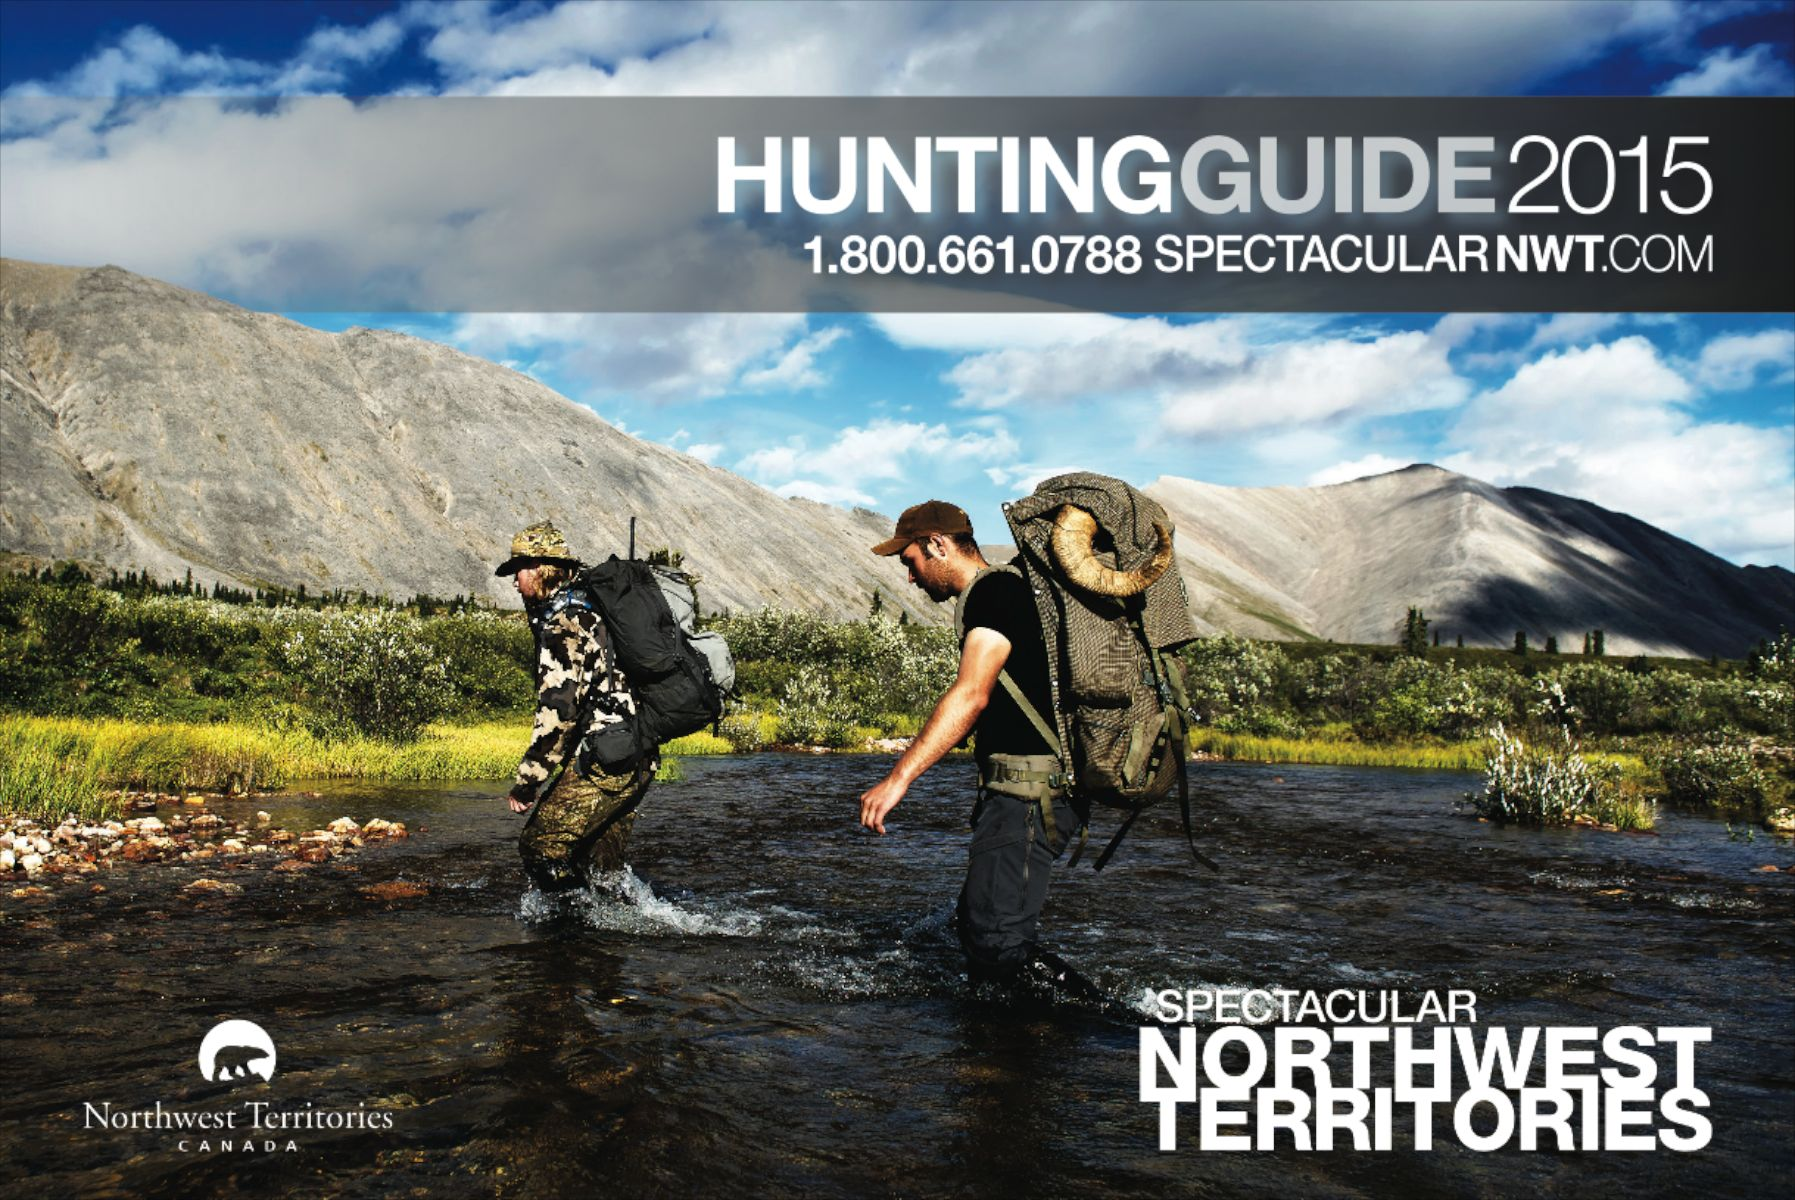 JasonvanBruggen.NWTT_5705_Hunting Guide Cover_2015